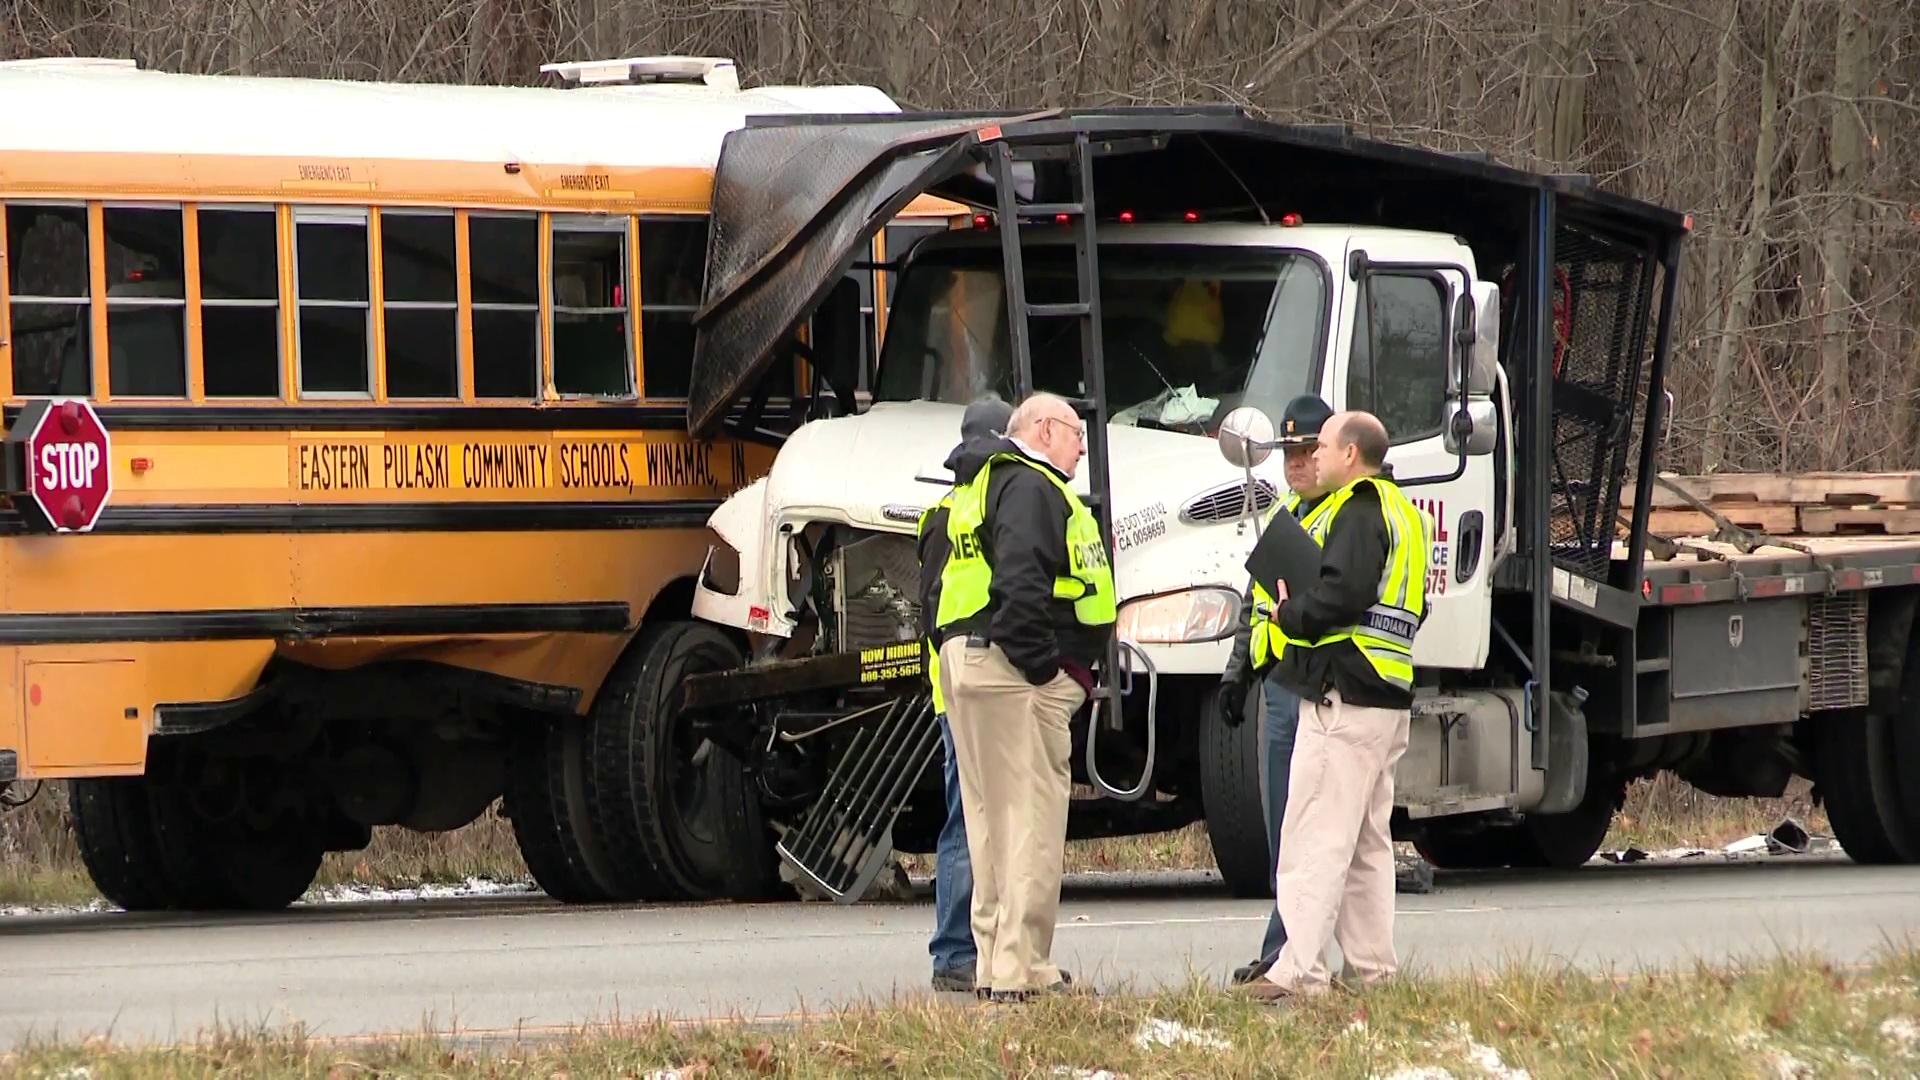 Teen killed when truck crashes into school bus on field trip in Indiana